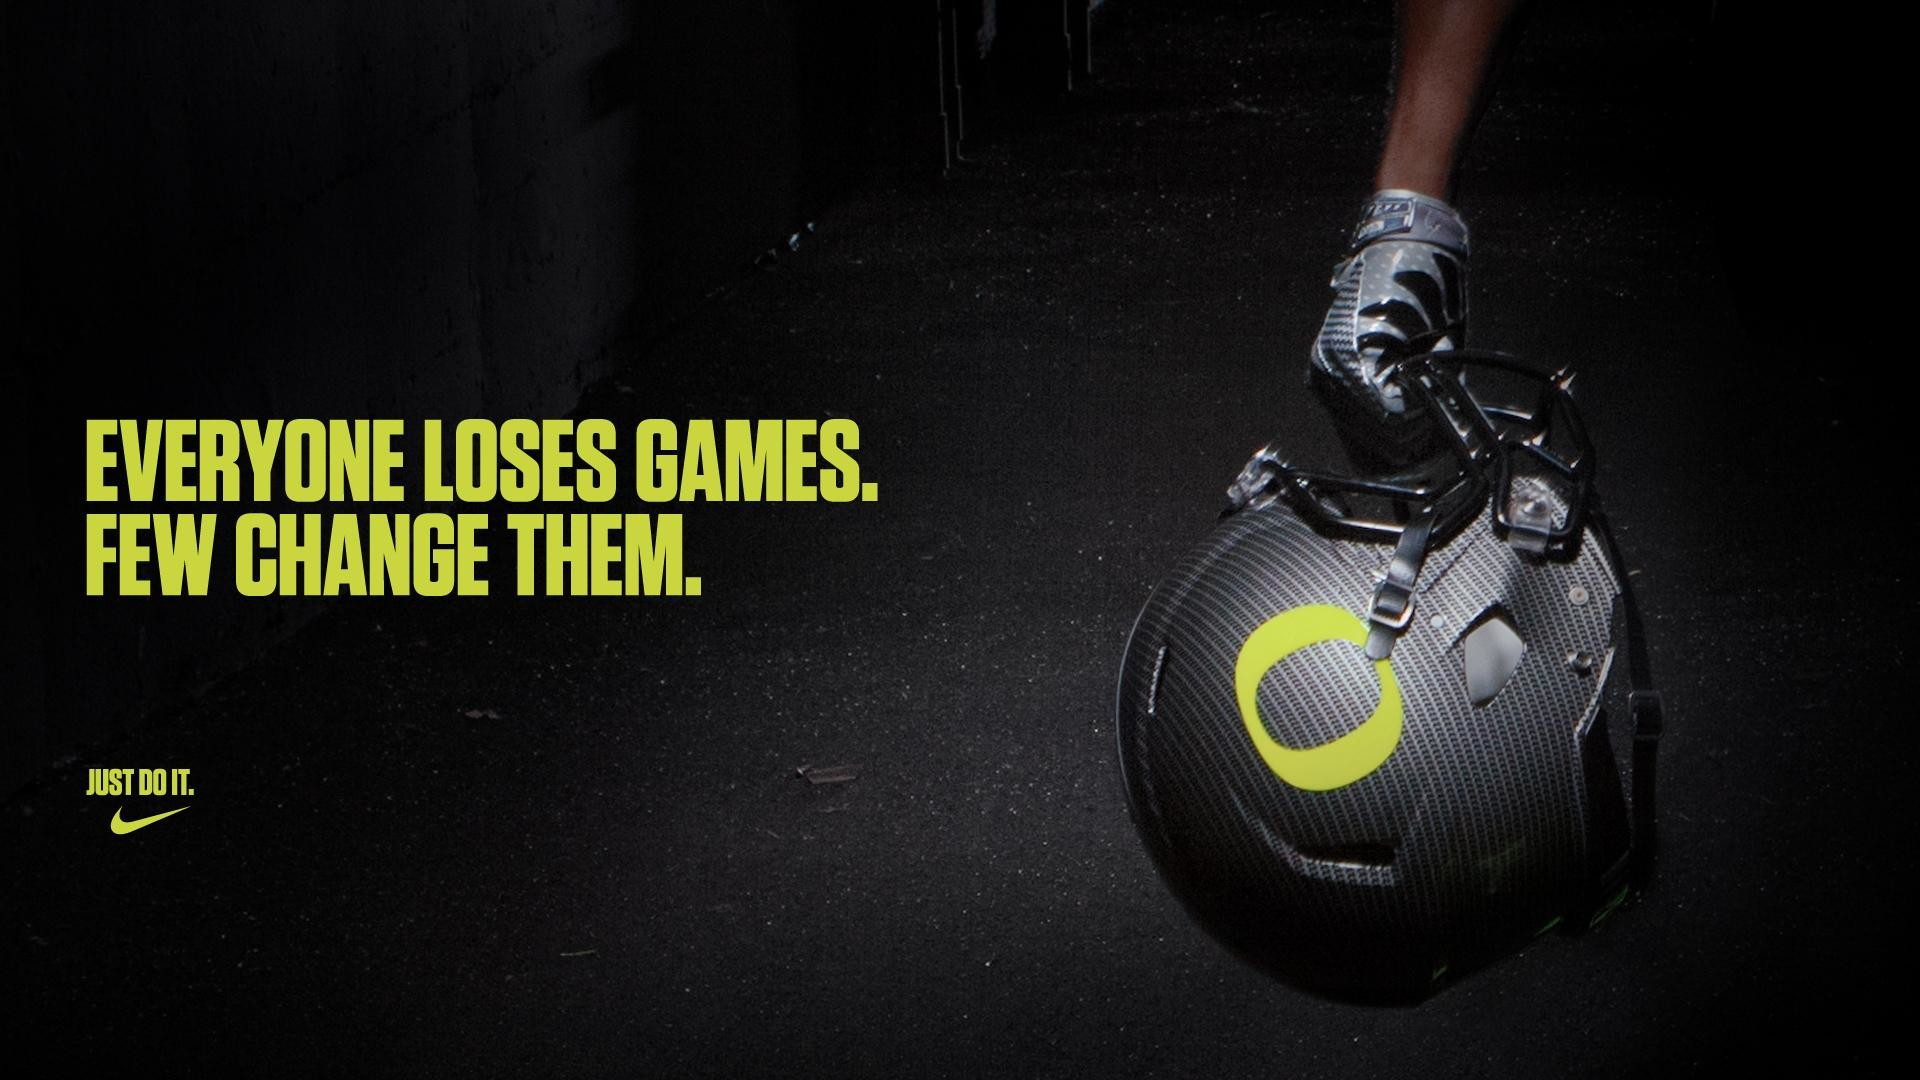 wallpaper.wiki-Nike-Motivational-Iphone-HD-Images-PIC-